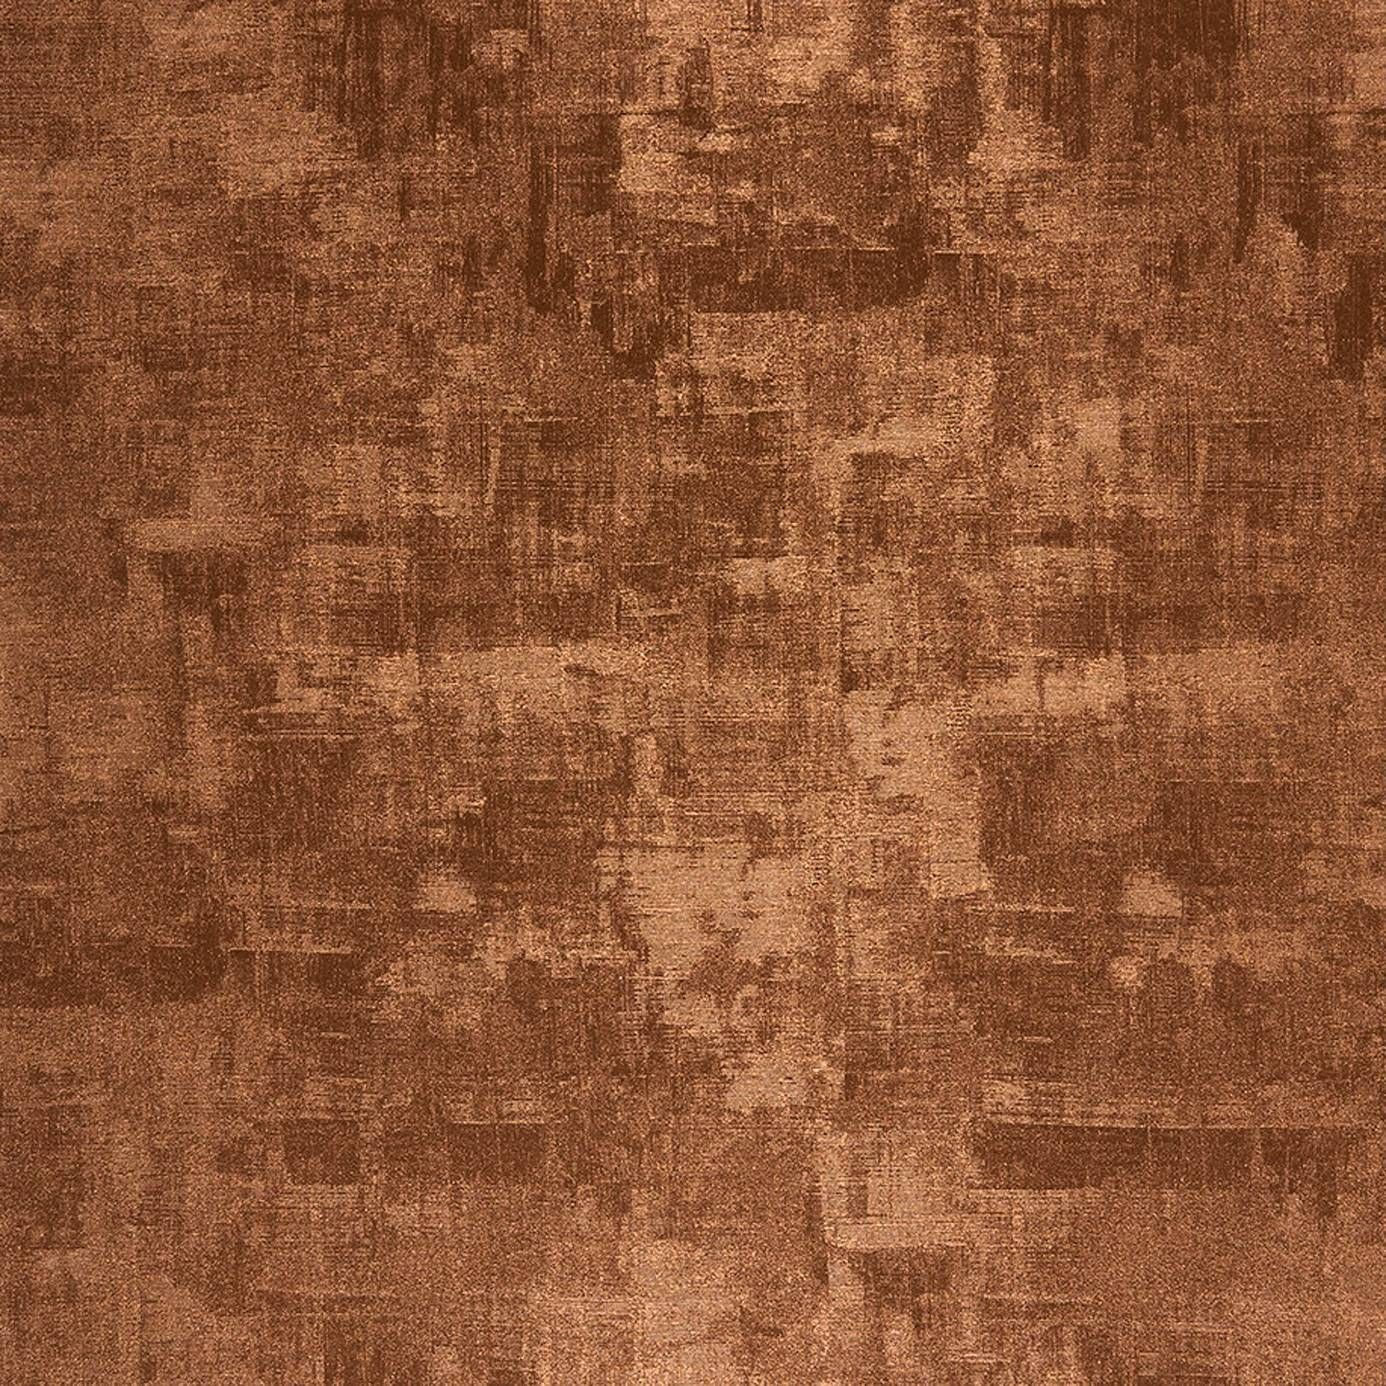 Copper Wallpaper From The Majestic Collection By Casadeco Powder Room Walls Above Wainscotting